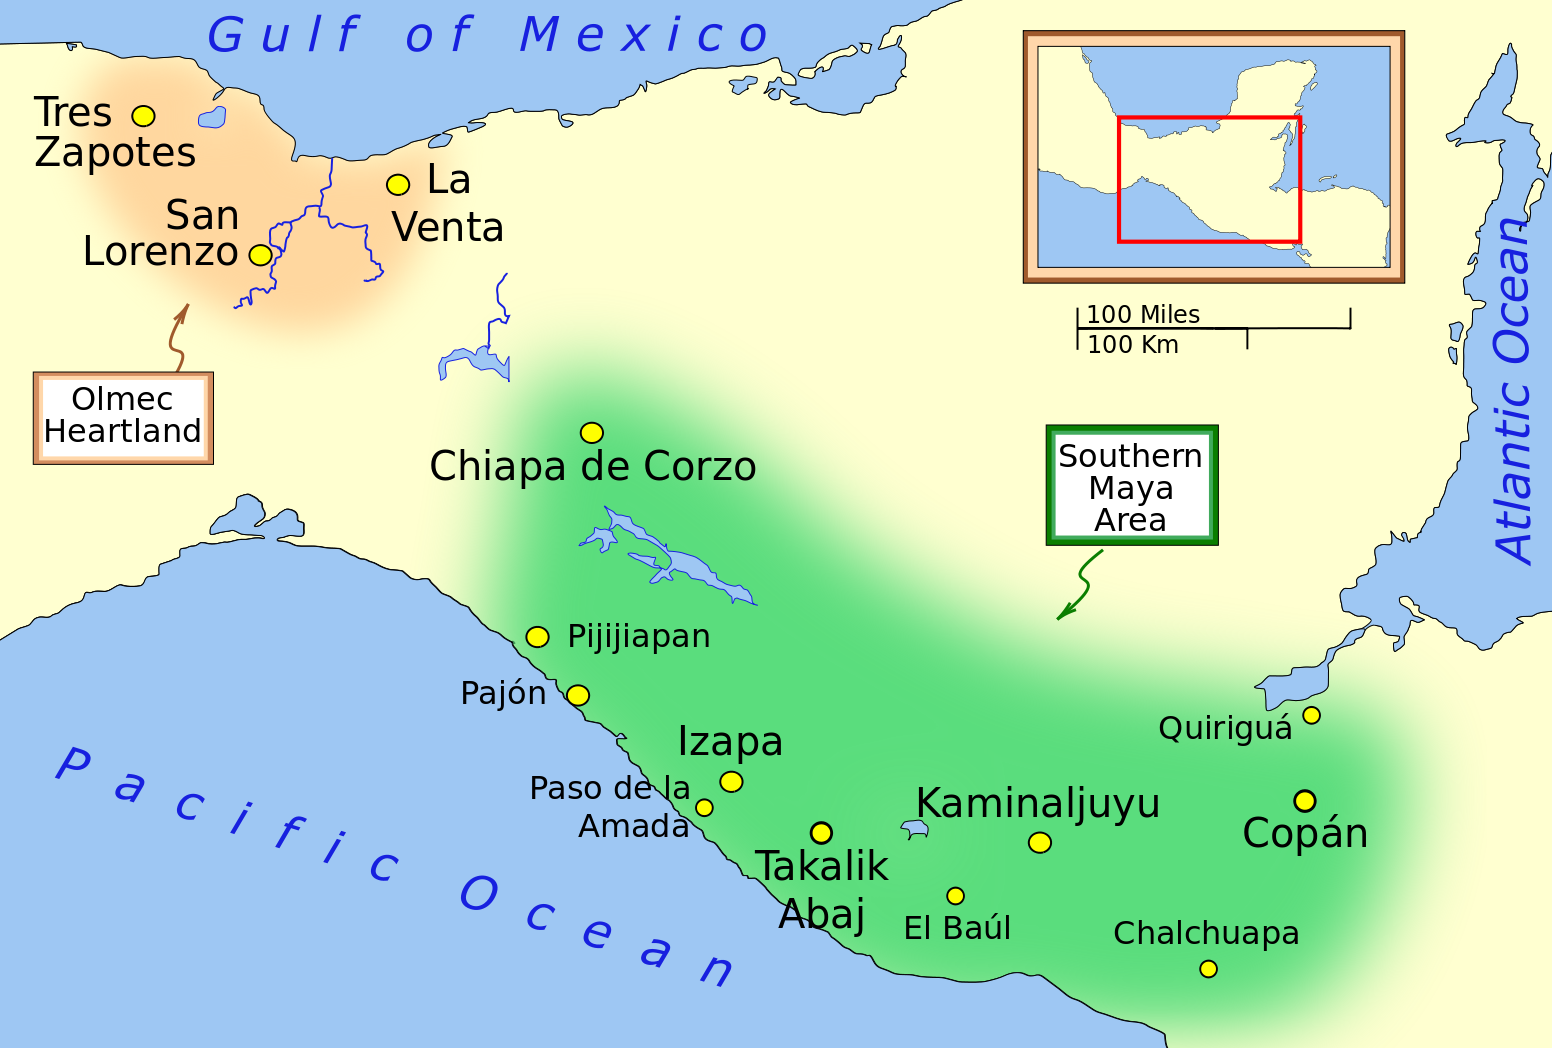 The southern Maya area, showing the locations of Quiriguá and Copán